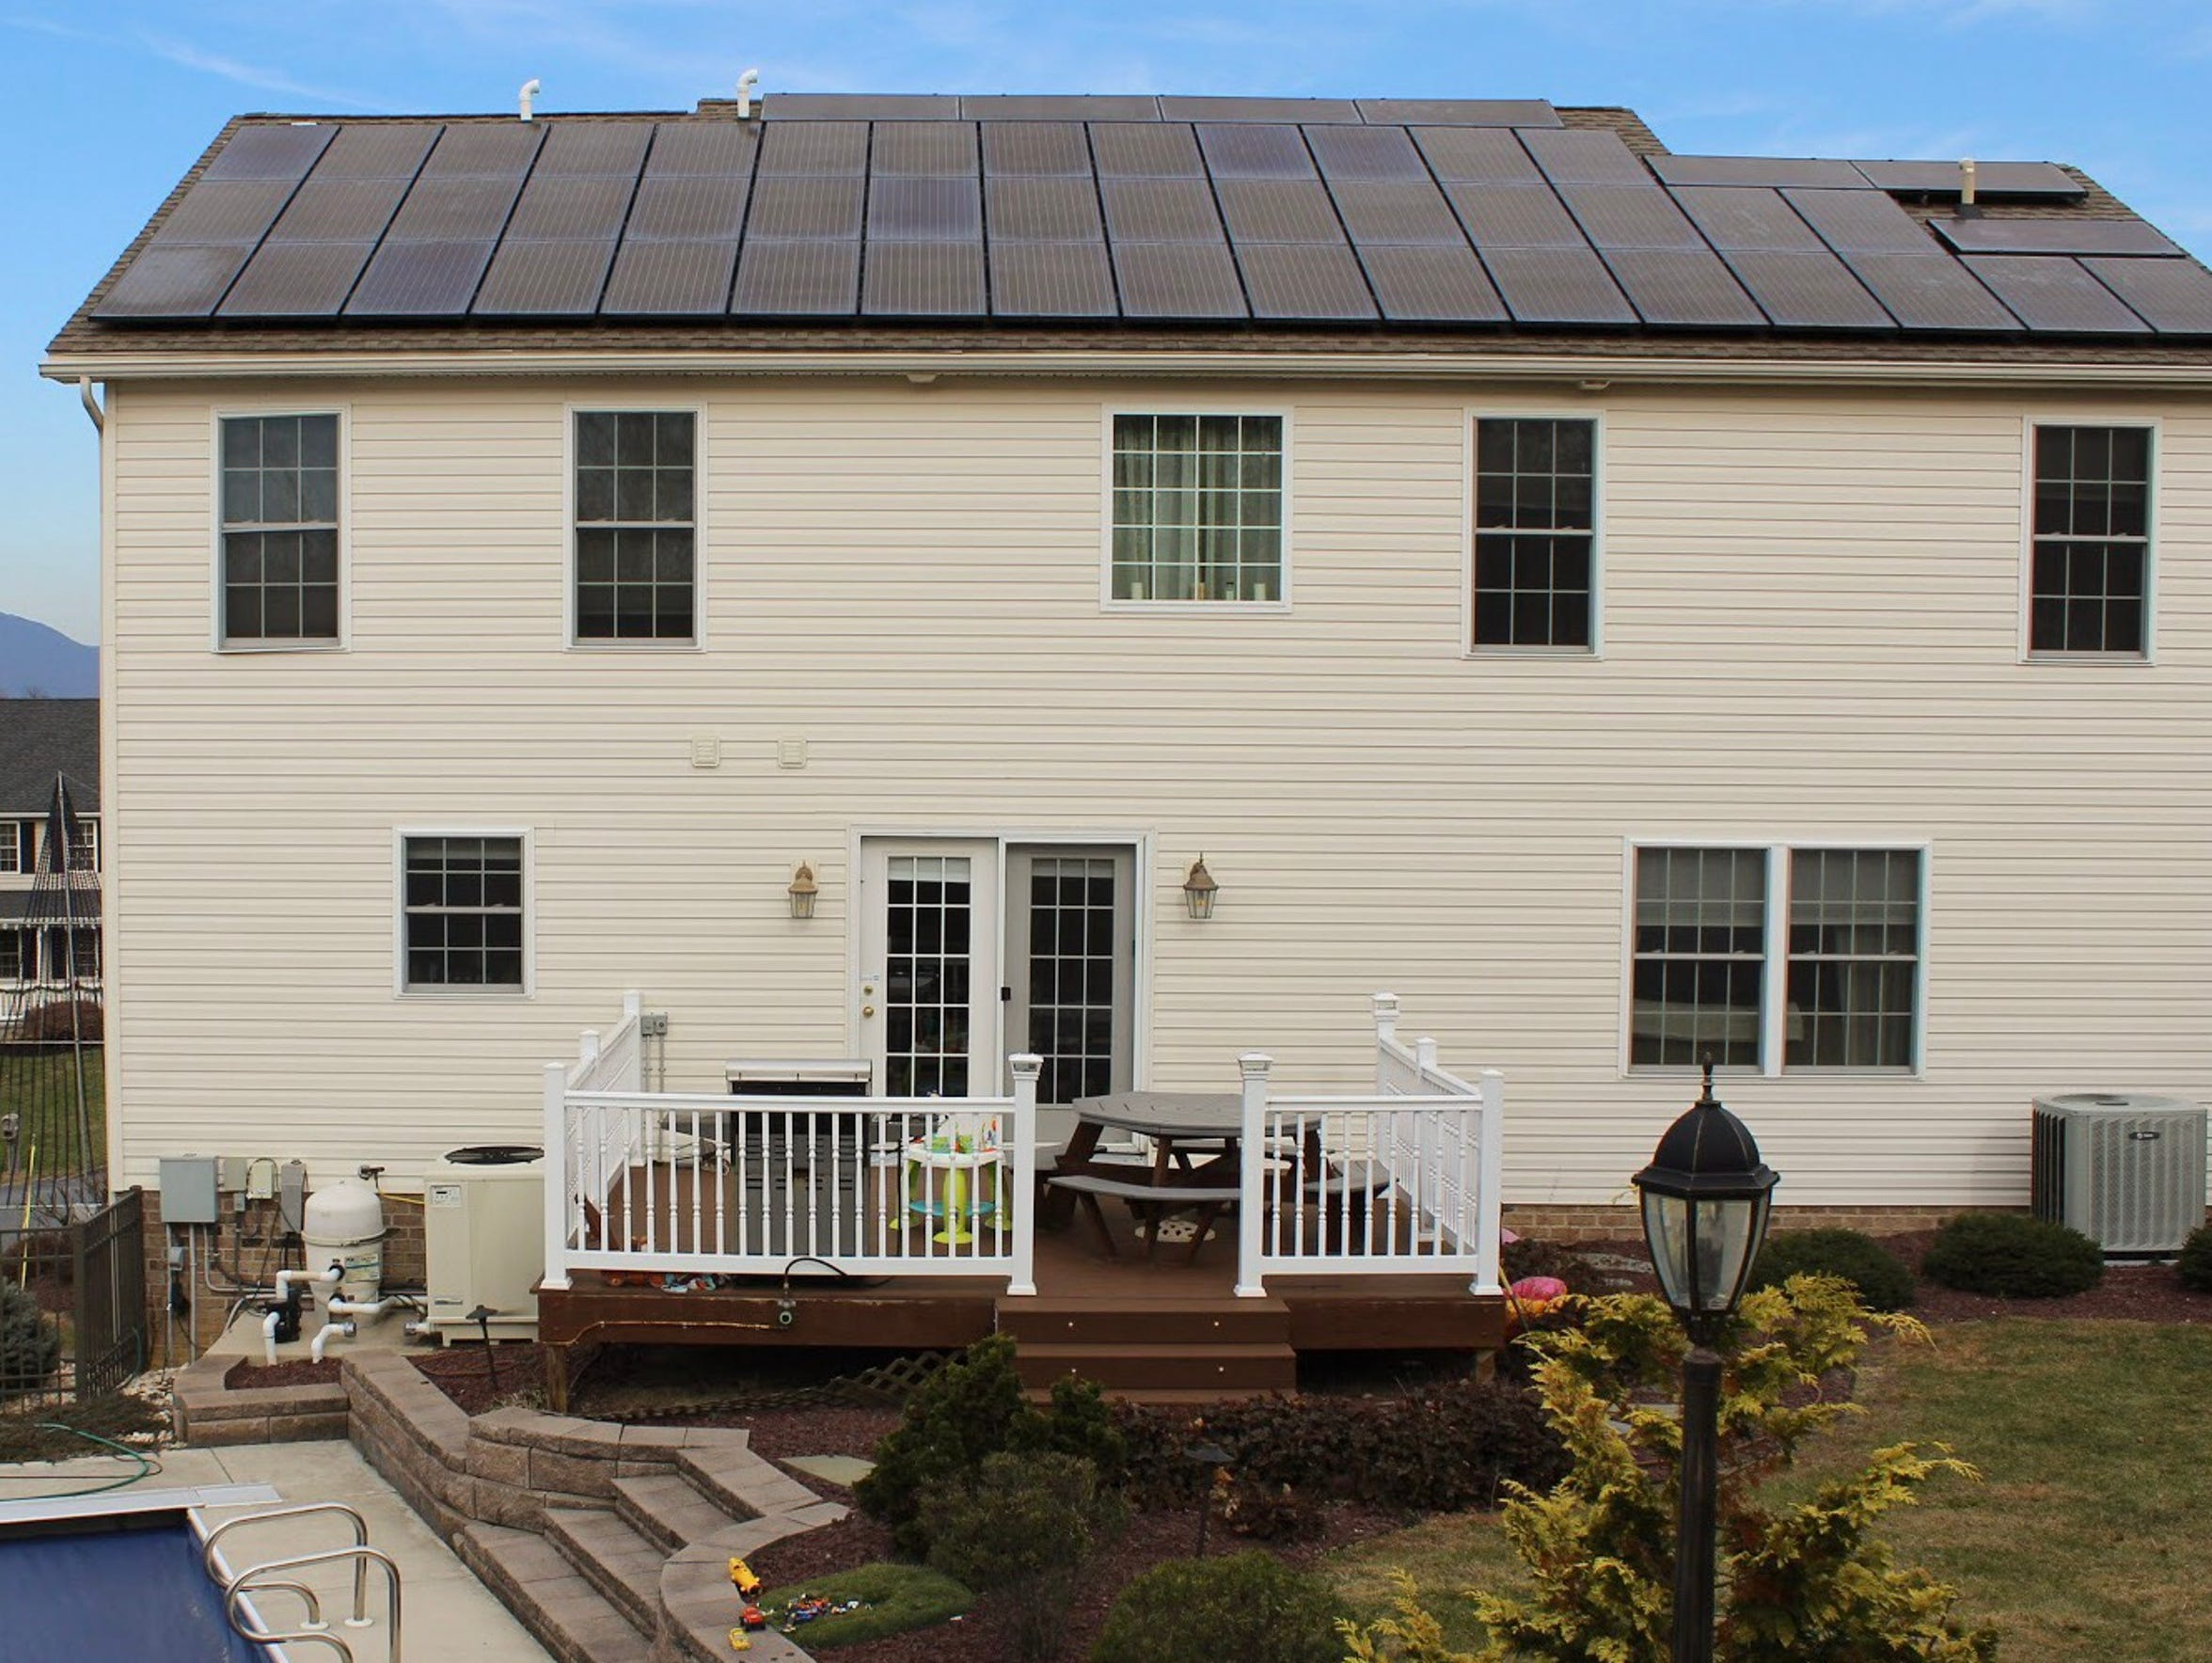 Homeowner Mike Cermak installed solar panels on the